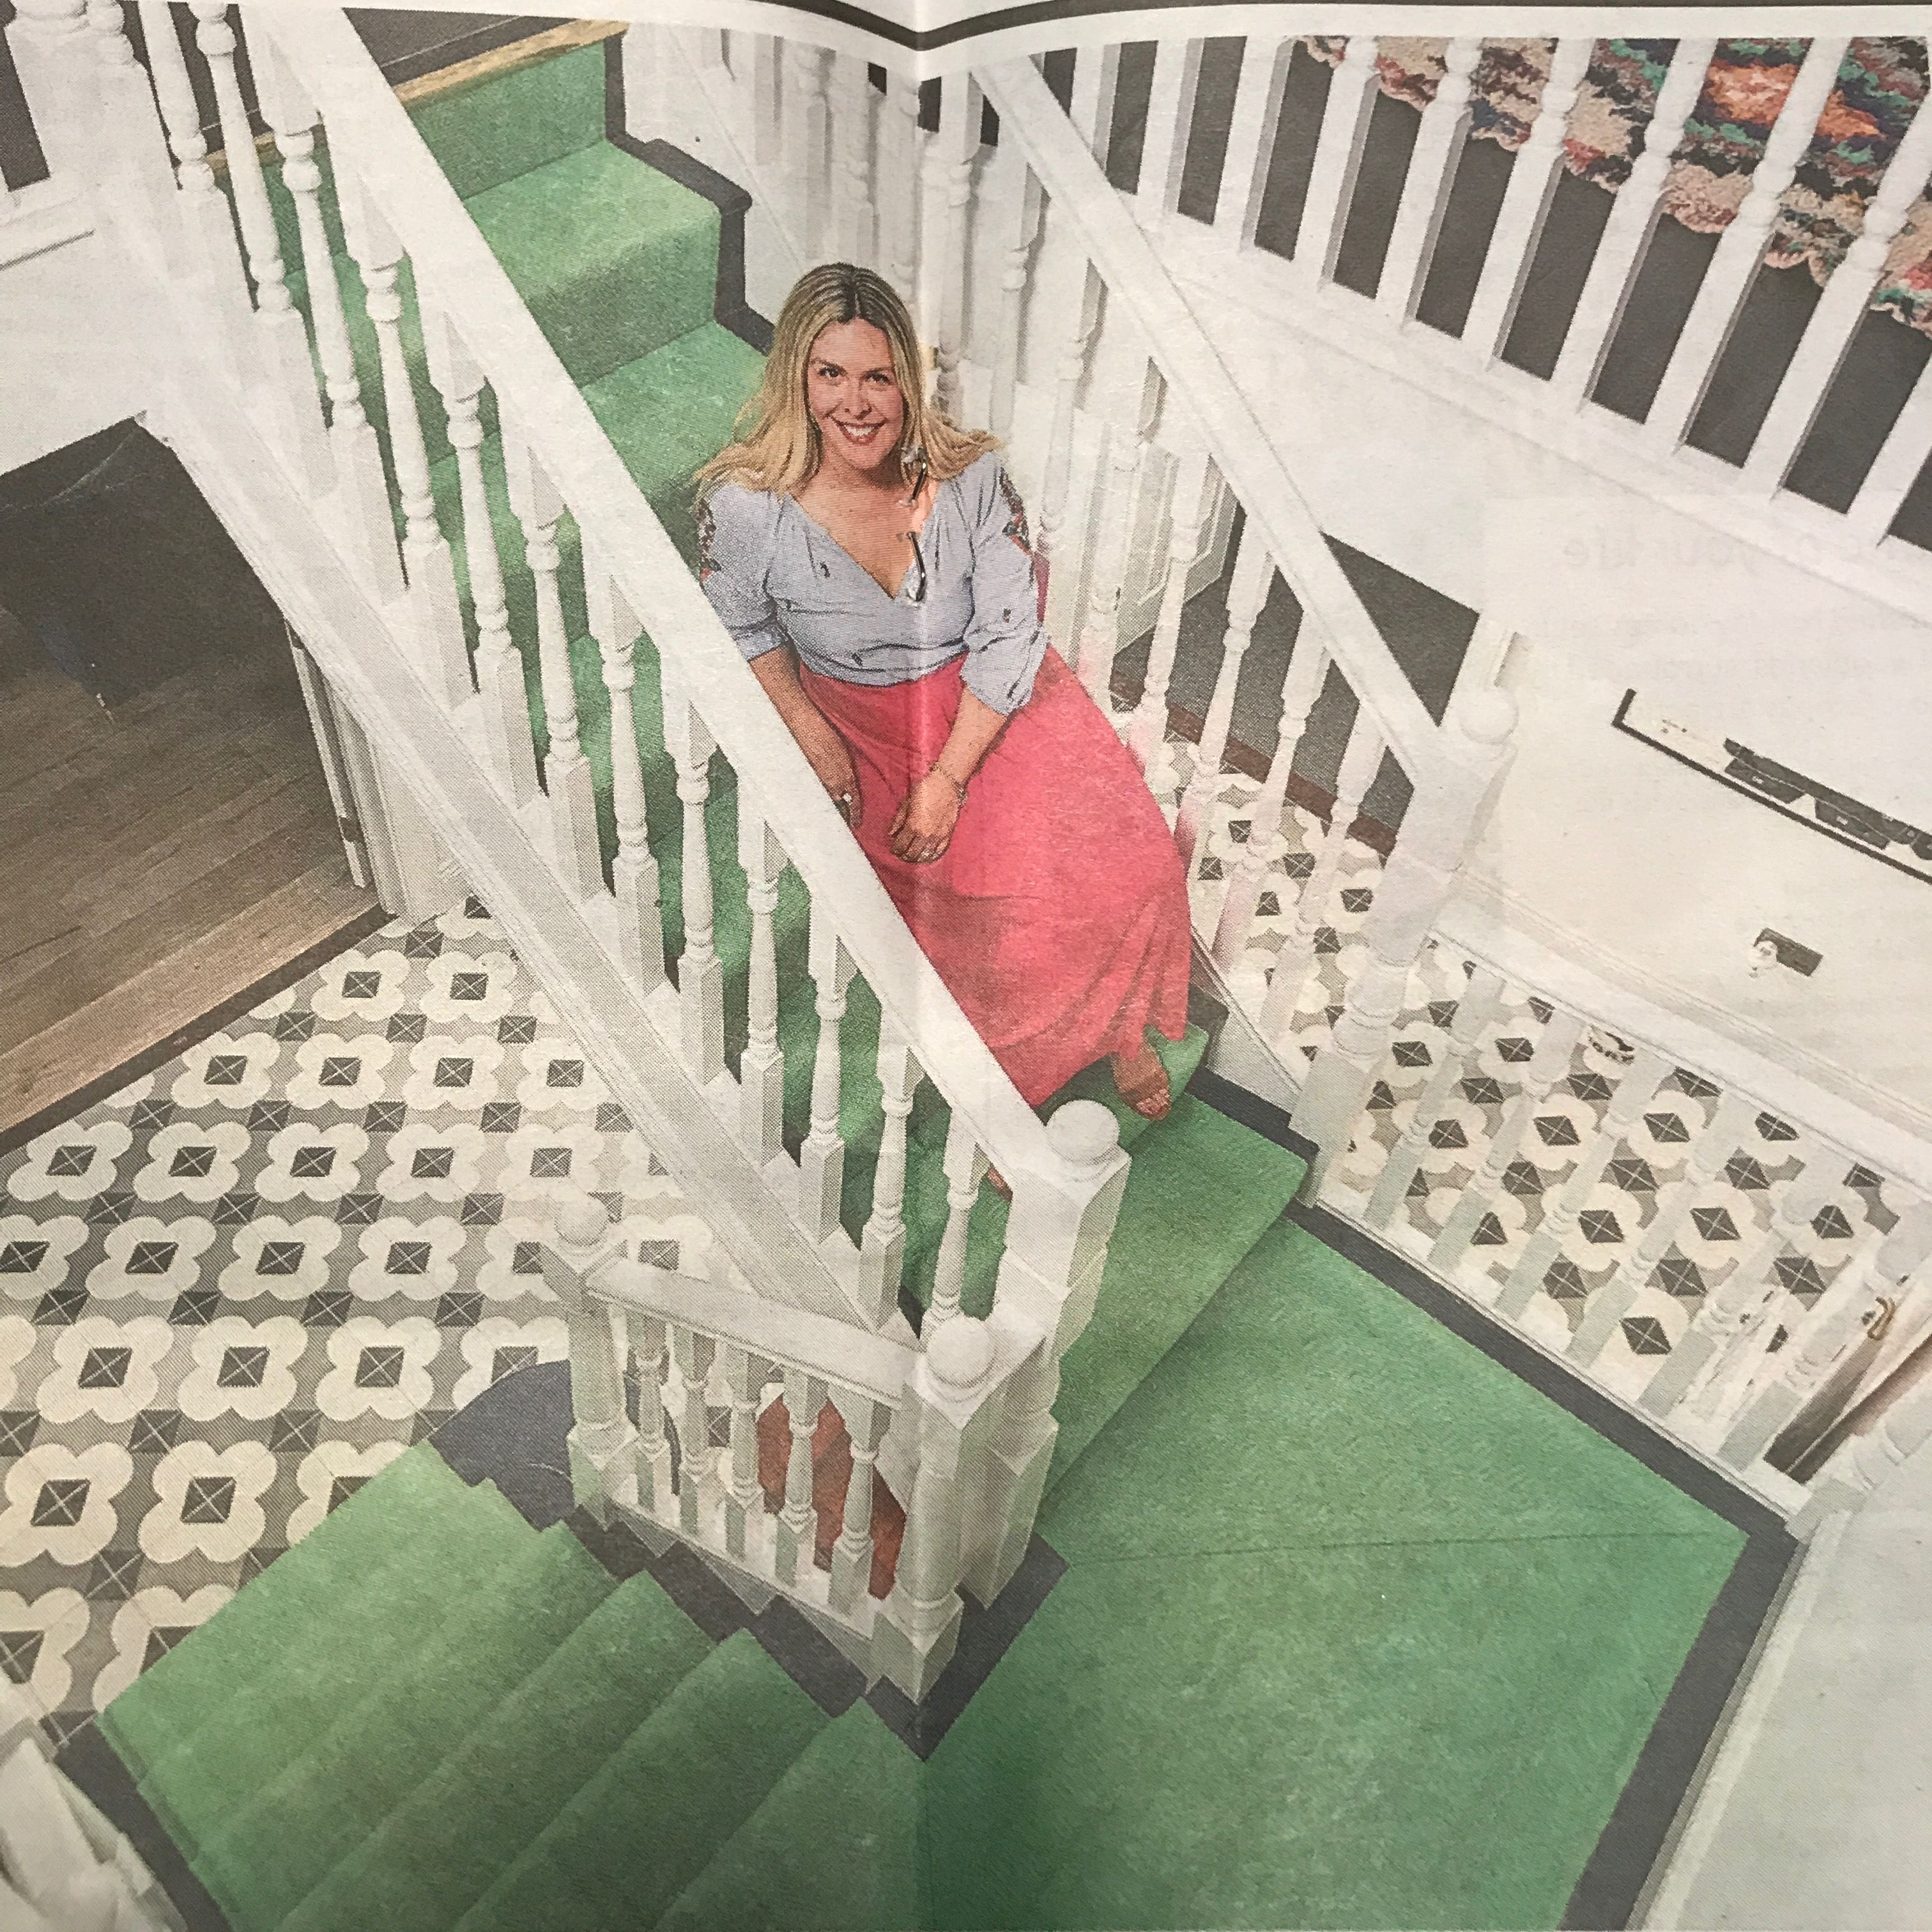 Best Bright Green Carpet For Stairs Green Carpet Carpet 400 x 300